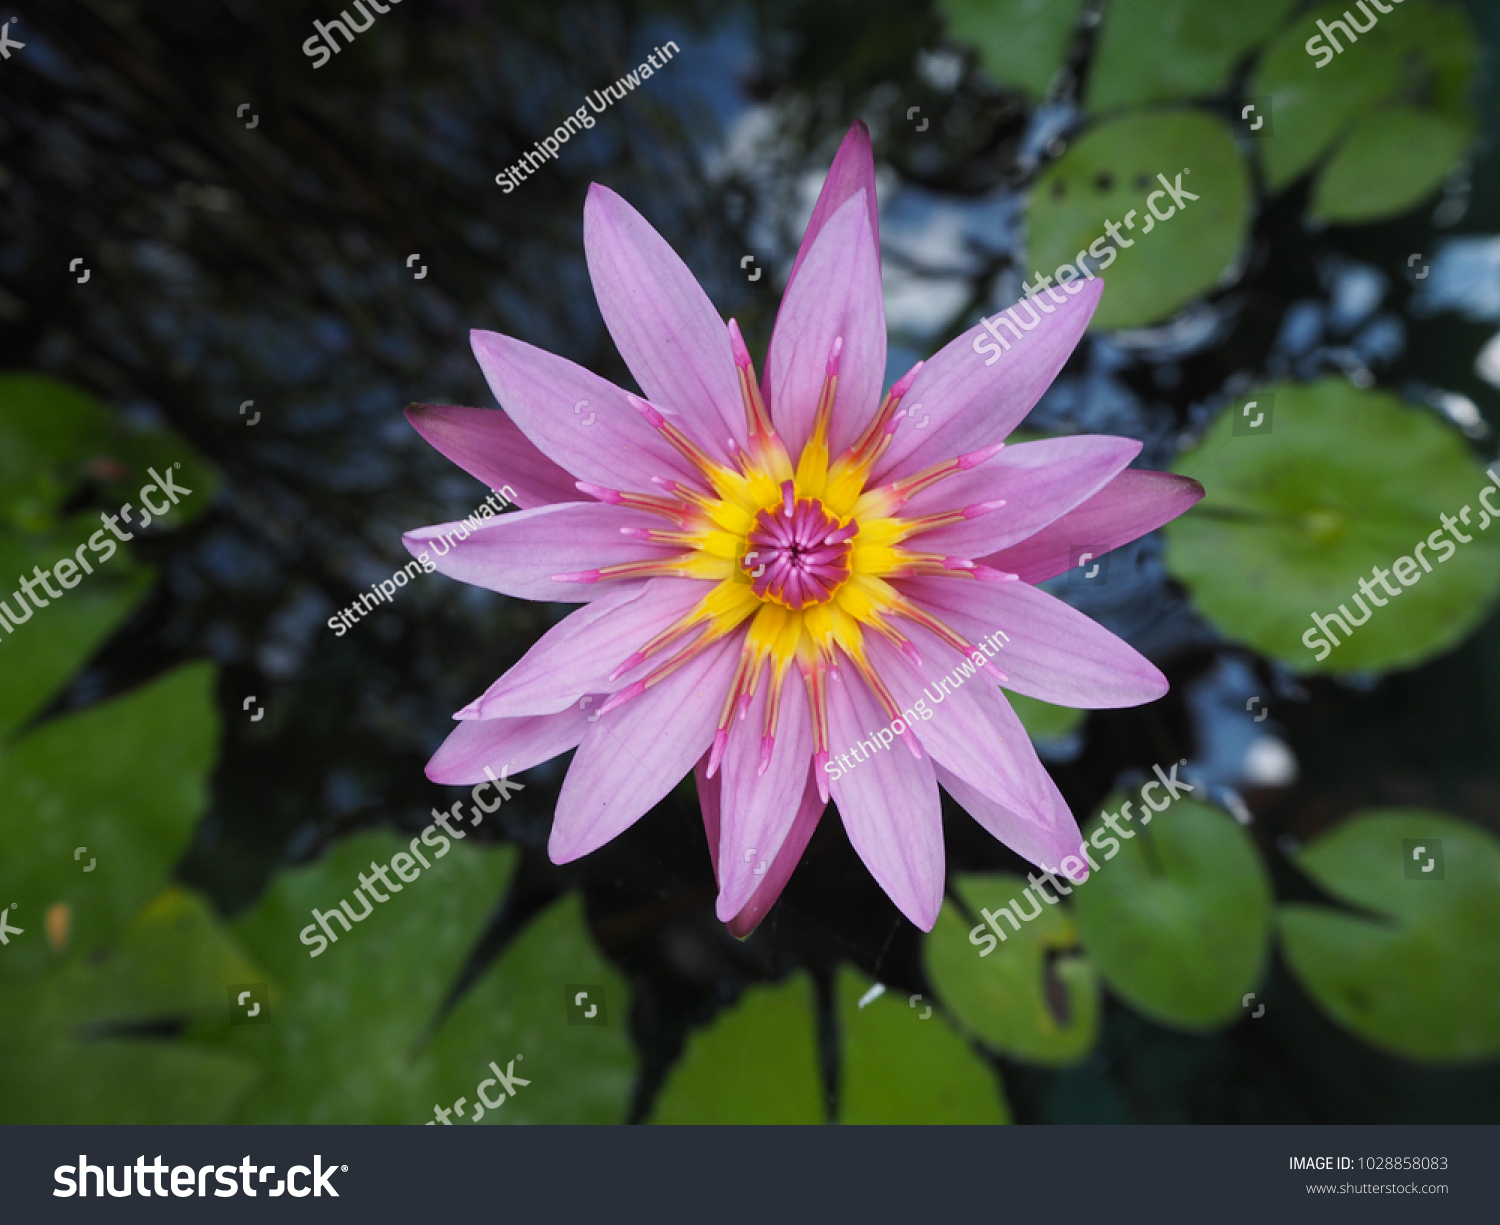 Purple Flower Of Water Lily With Yellow Center Floating On The Water